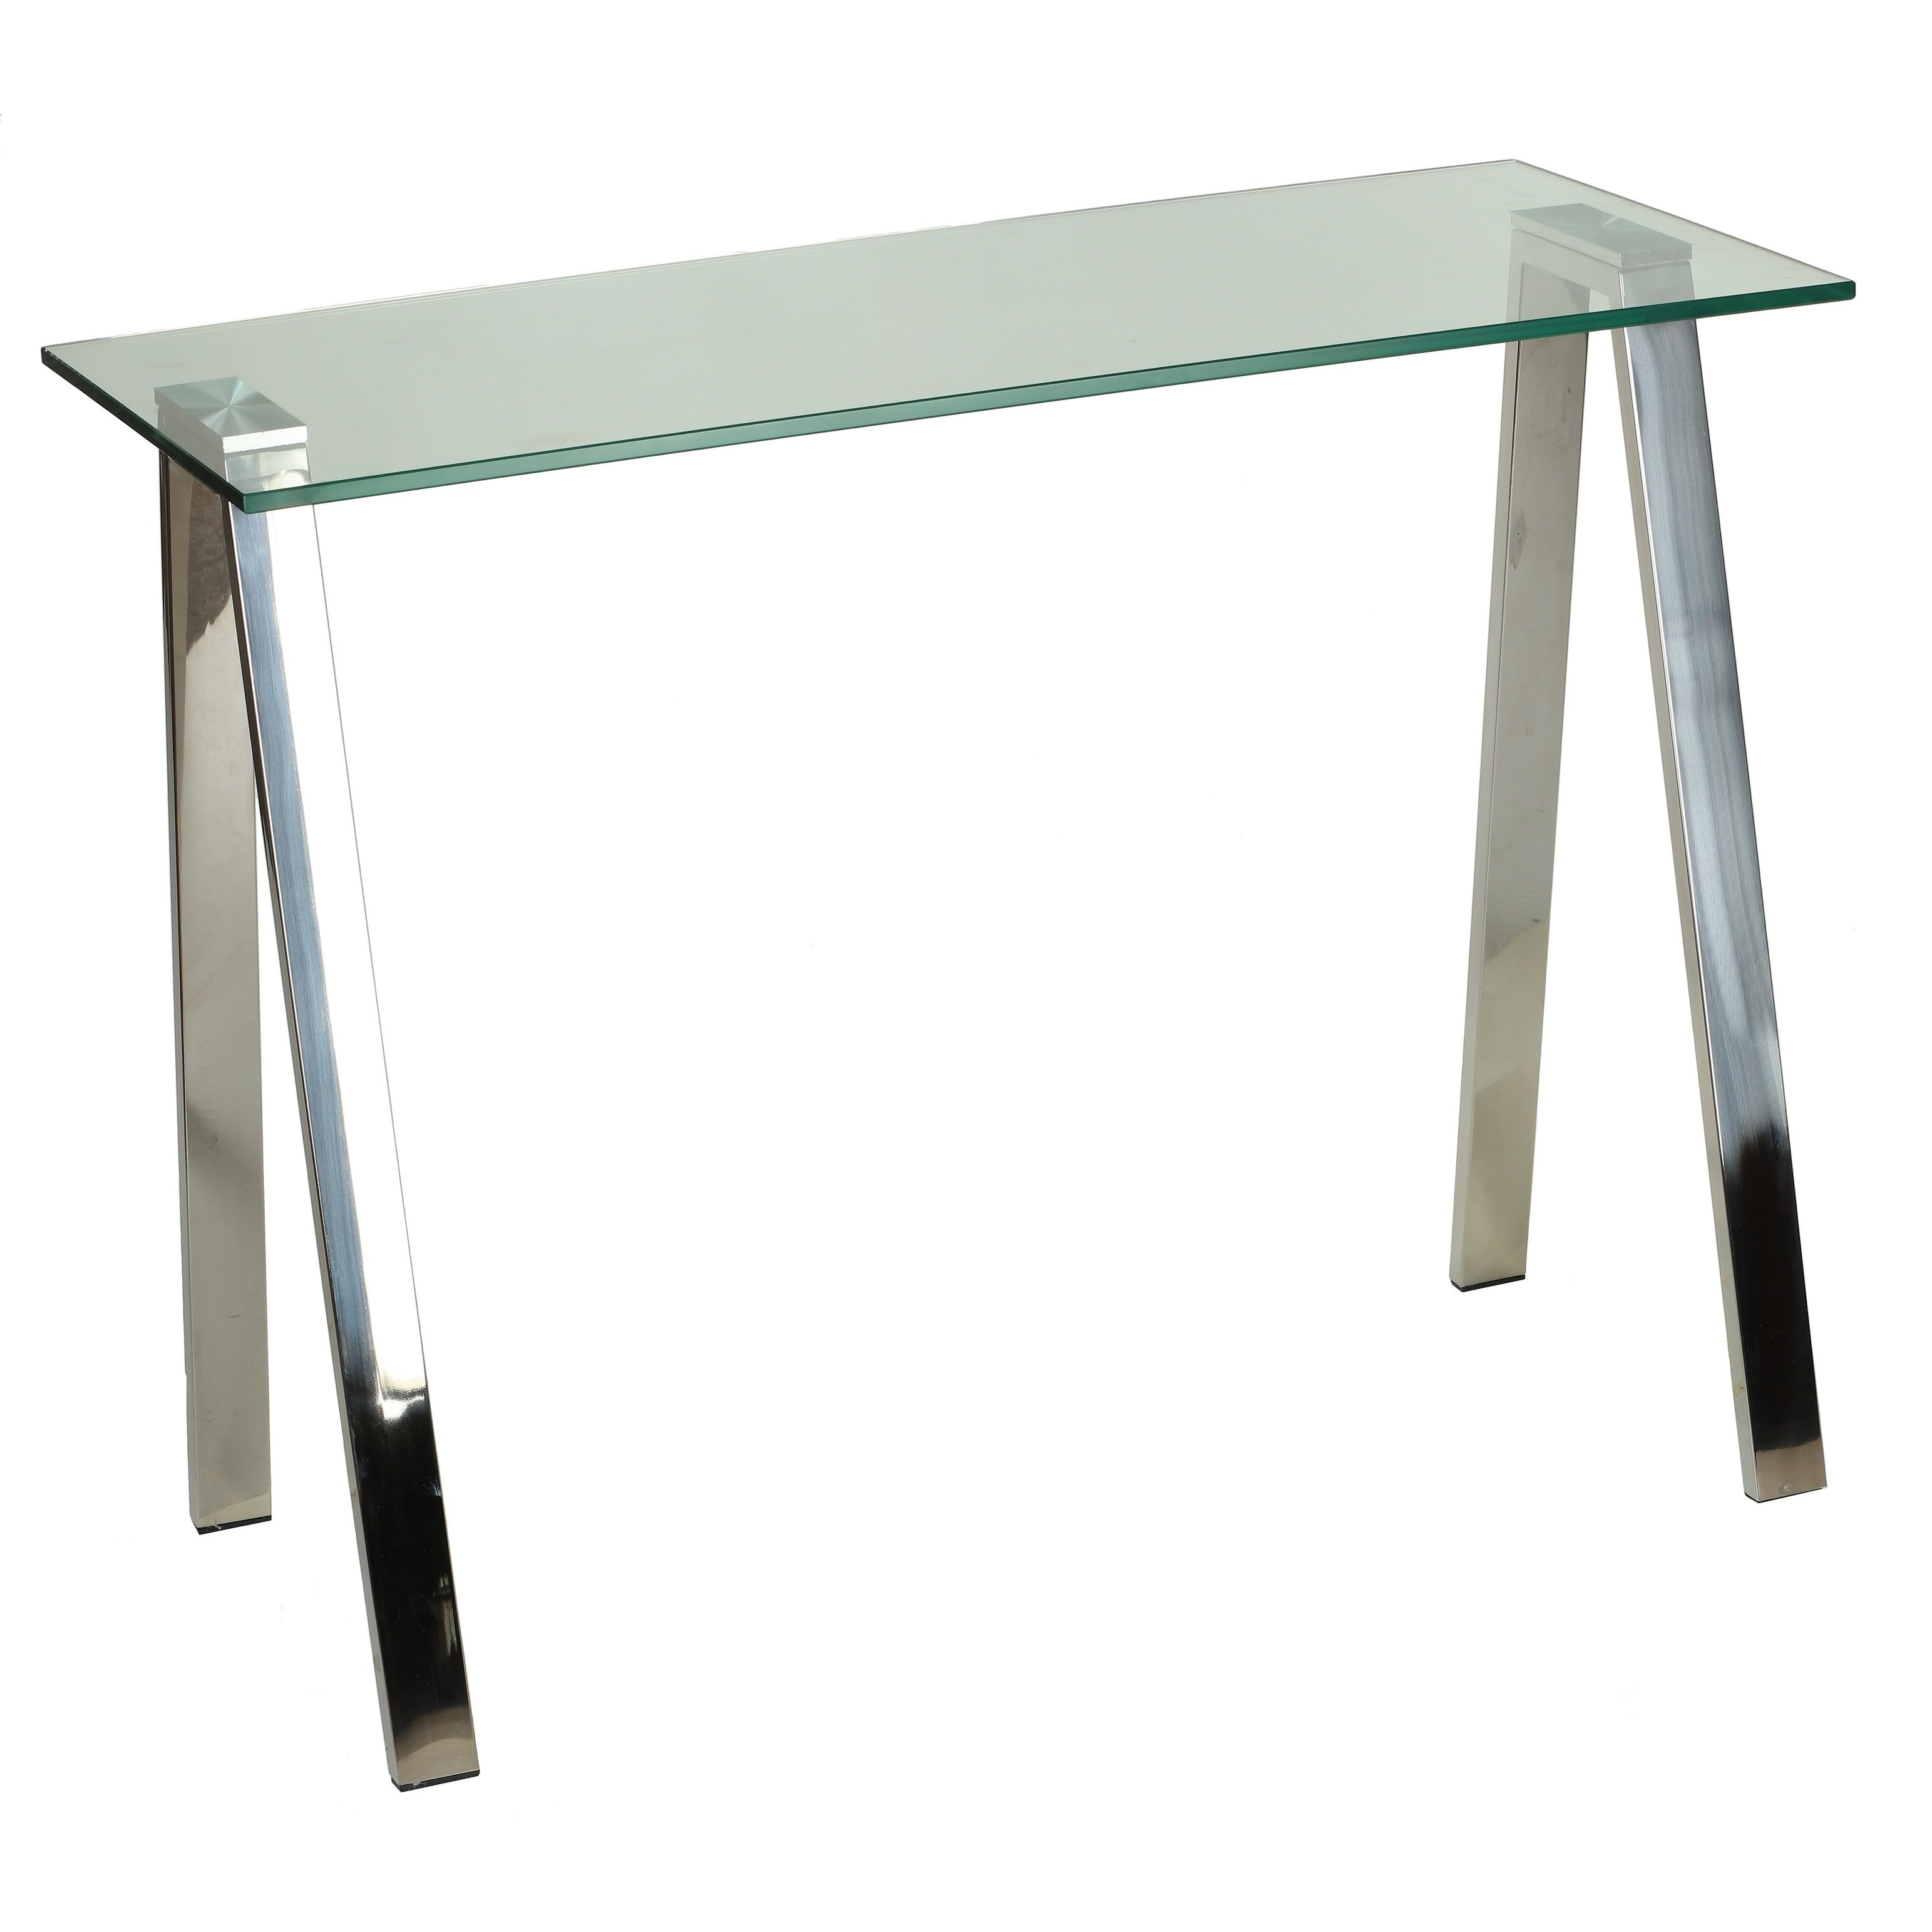 Shop Cortesi Home Trixie Glass Top Desk / Console Table with ...